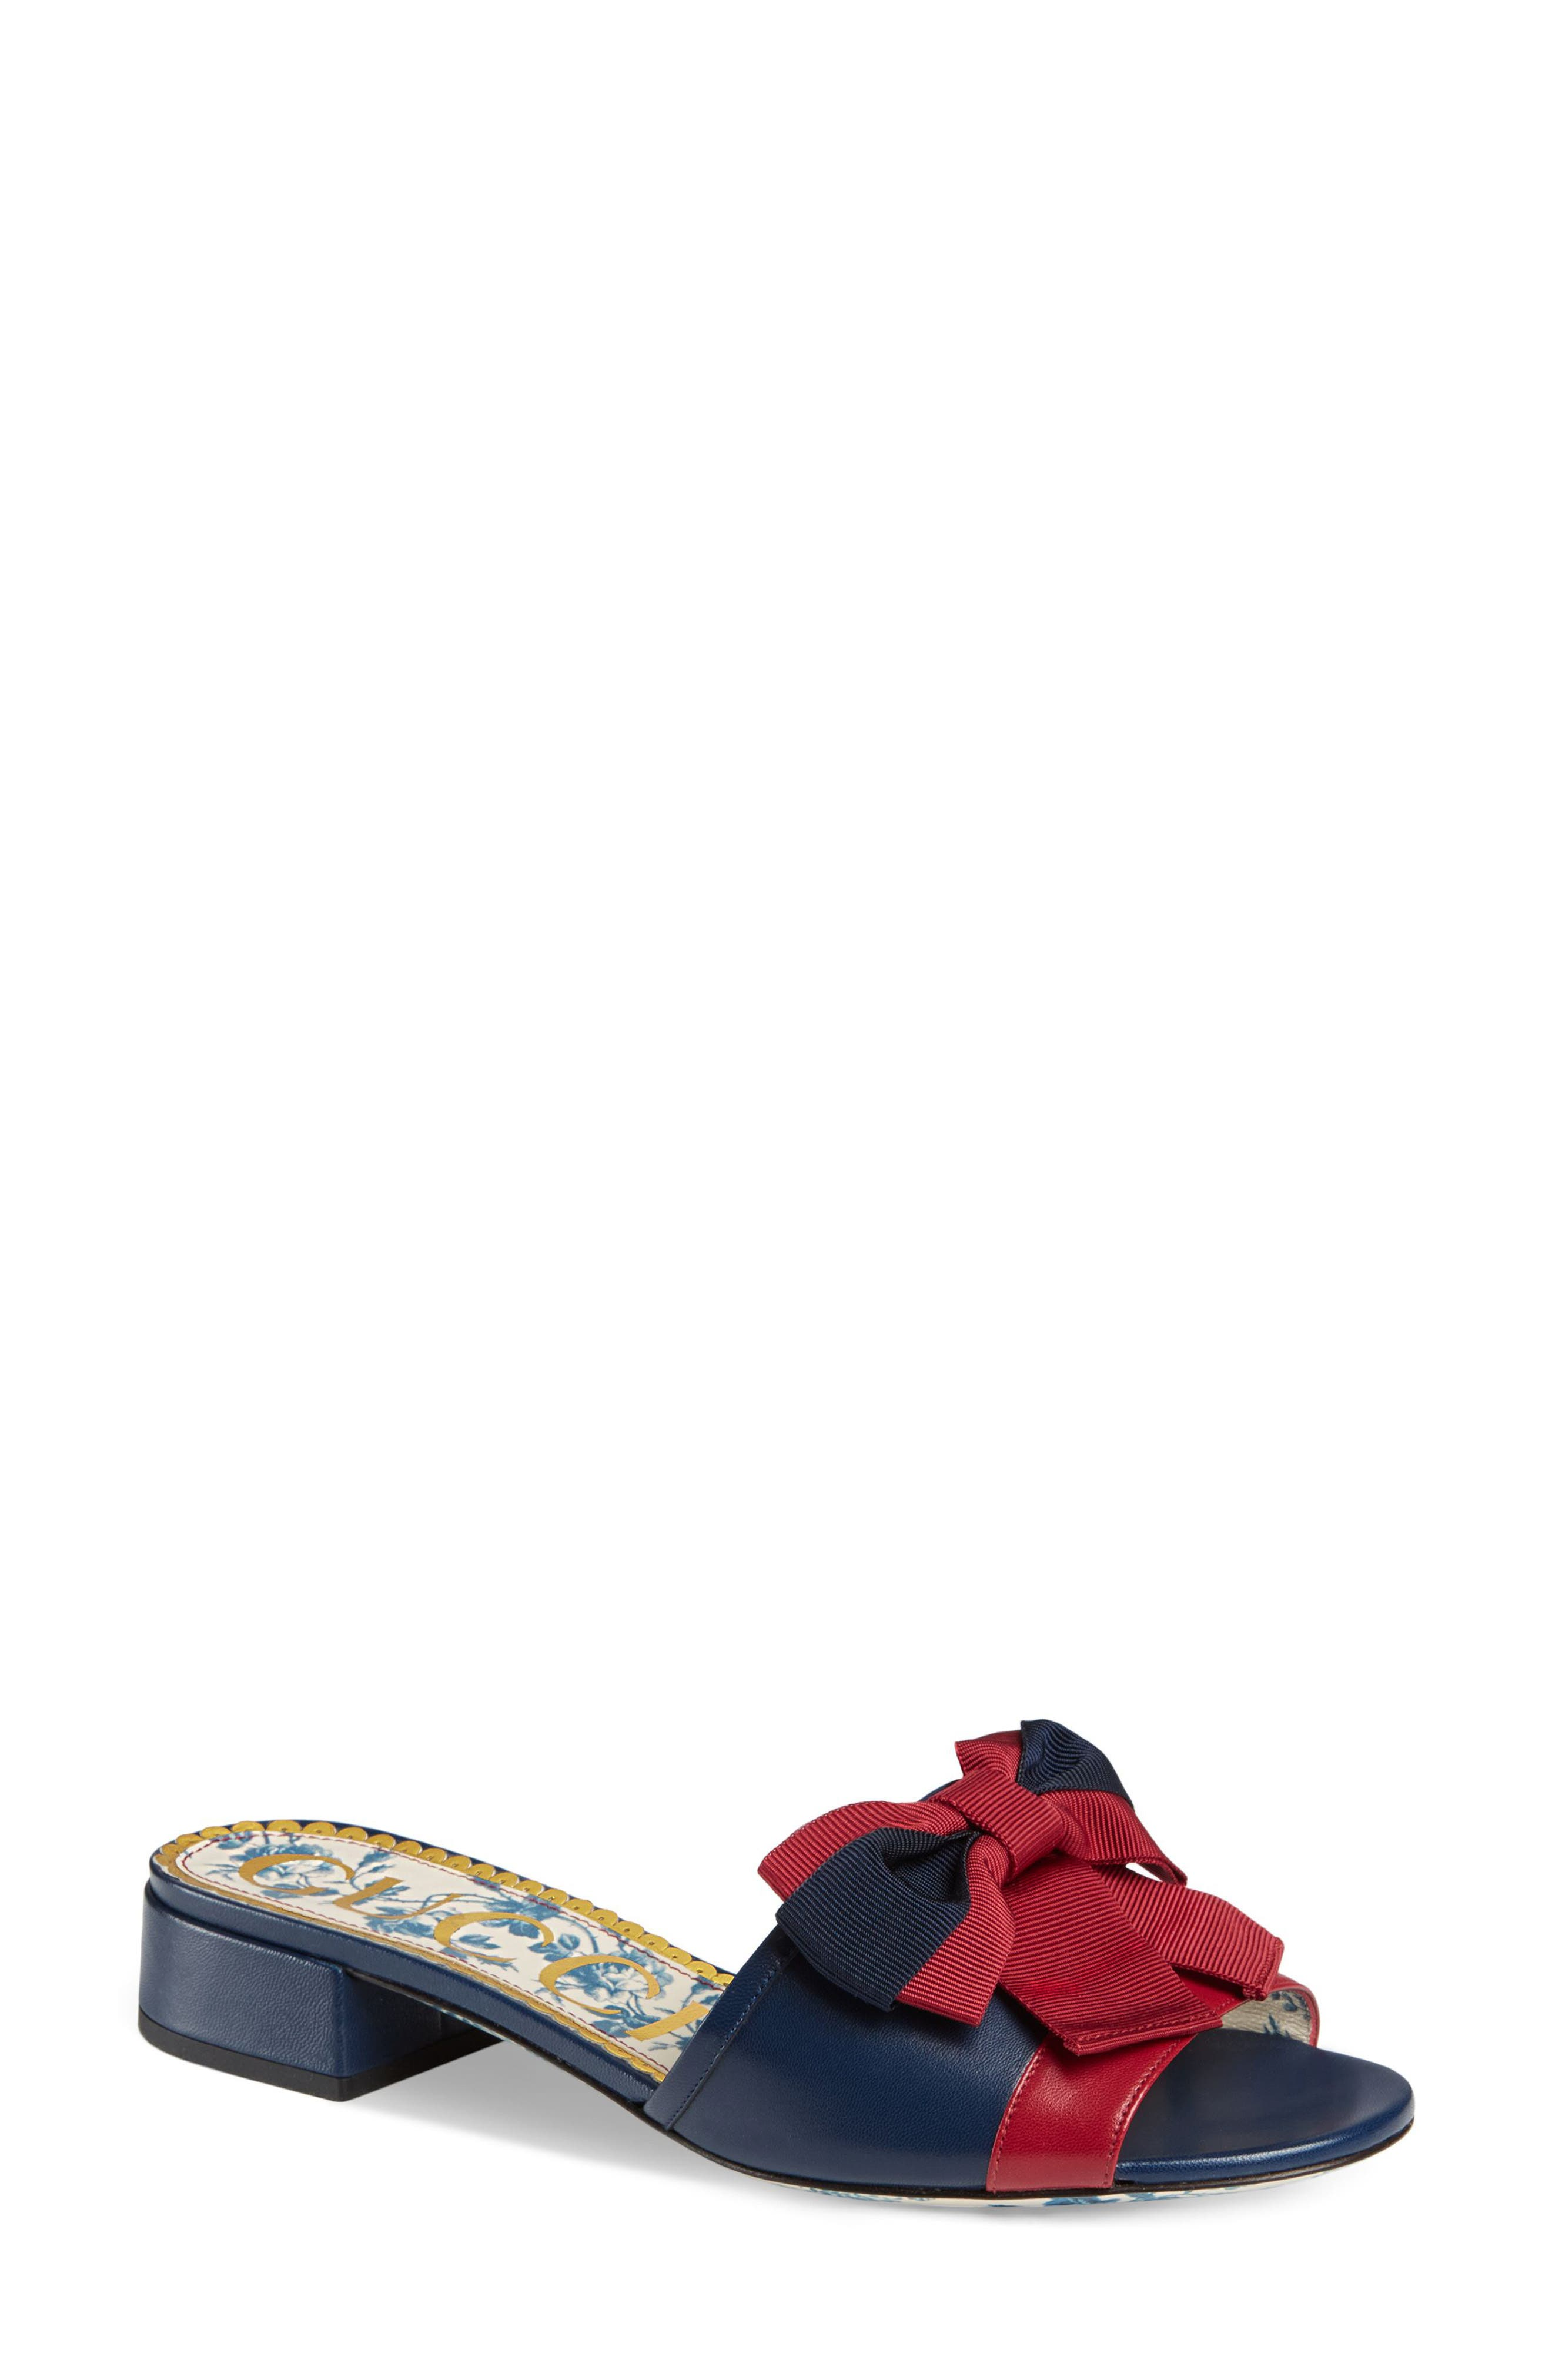 Sackville Bow Sandal,                         Main,                         color, BLUE/ RED